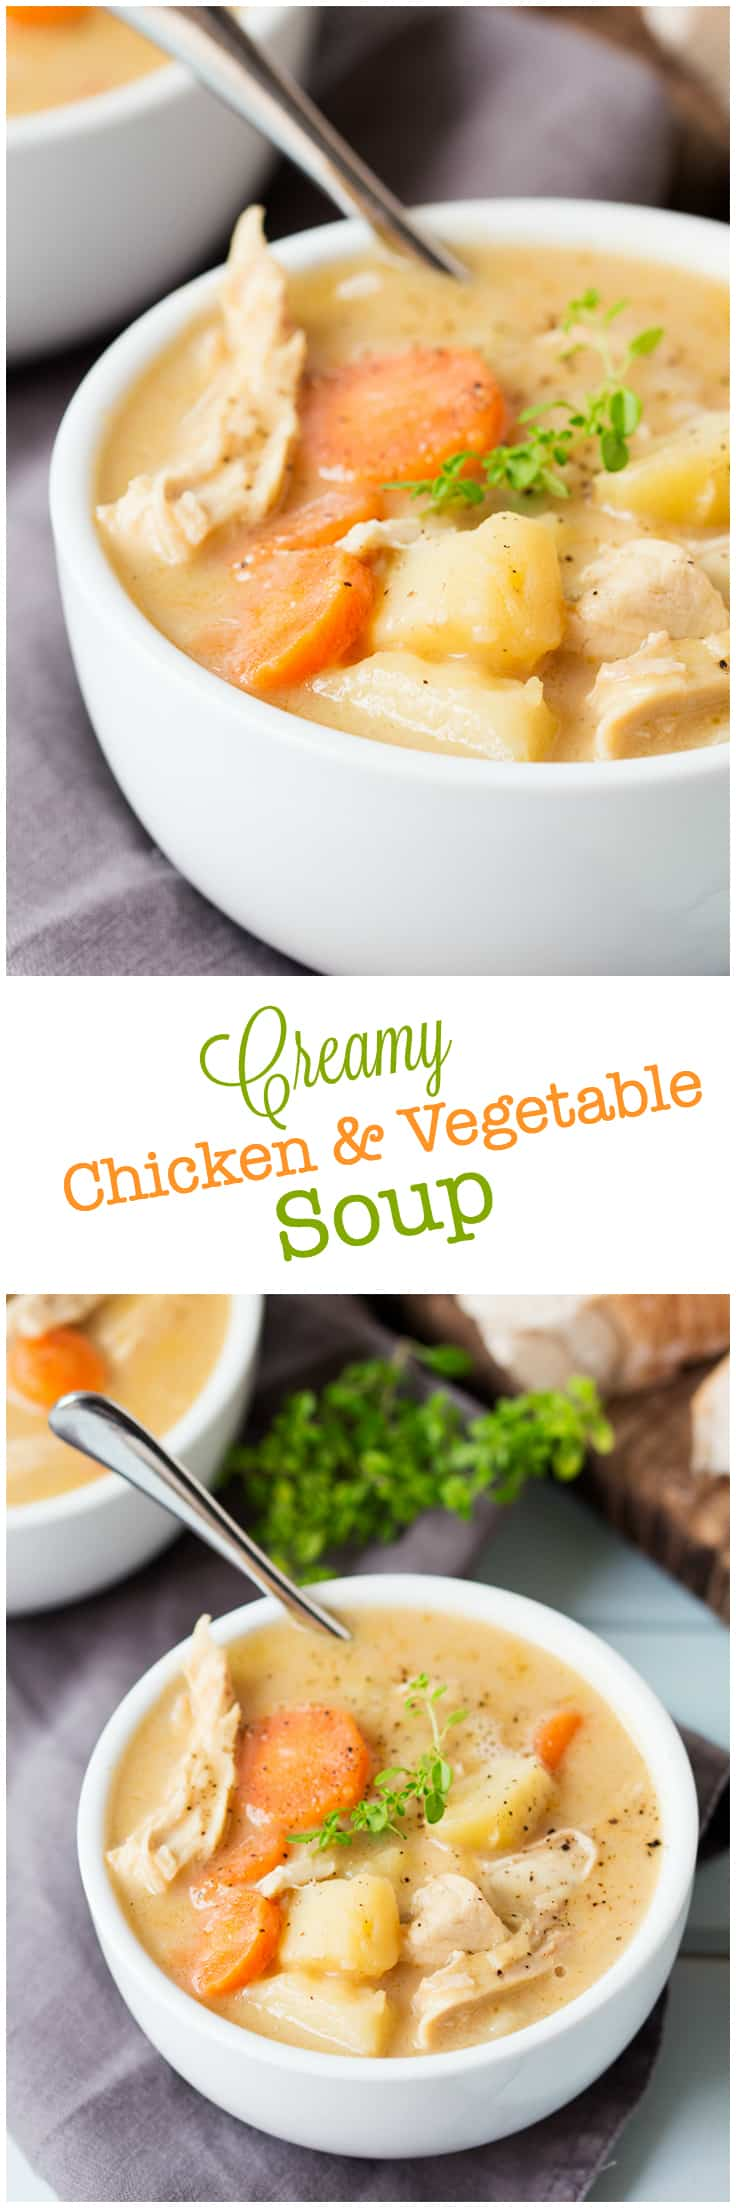 Creamy Chicken and Vegetable Soup - Use your leftover chicken bones to make the creamiest soup tonight! You only need 6 simple ingredients to make this yummy and comforting chicken soup.